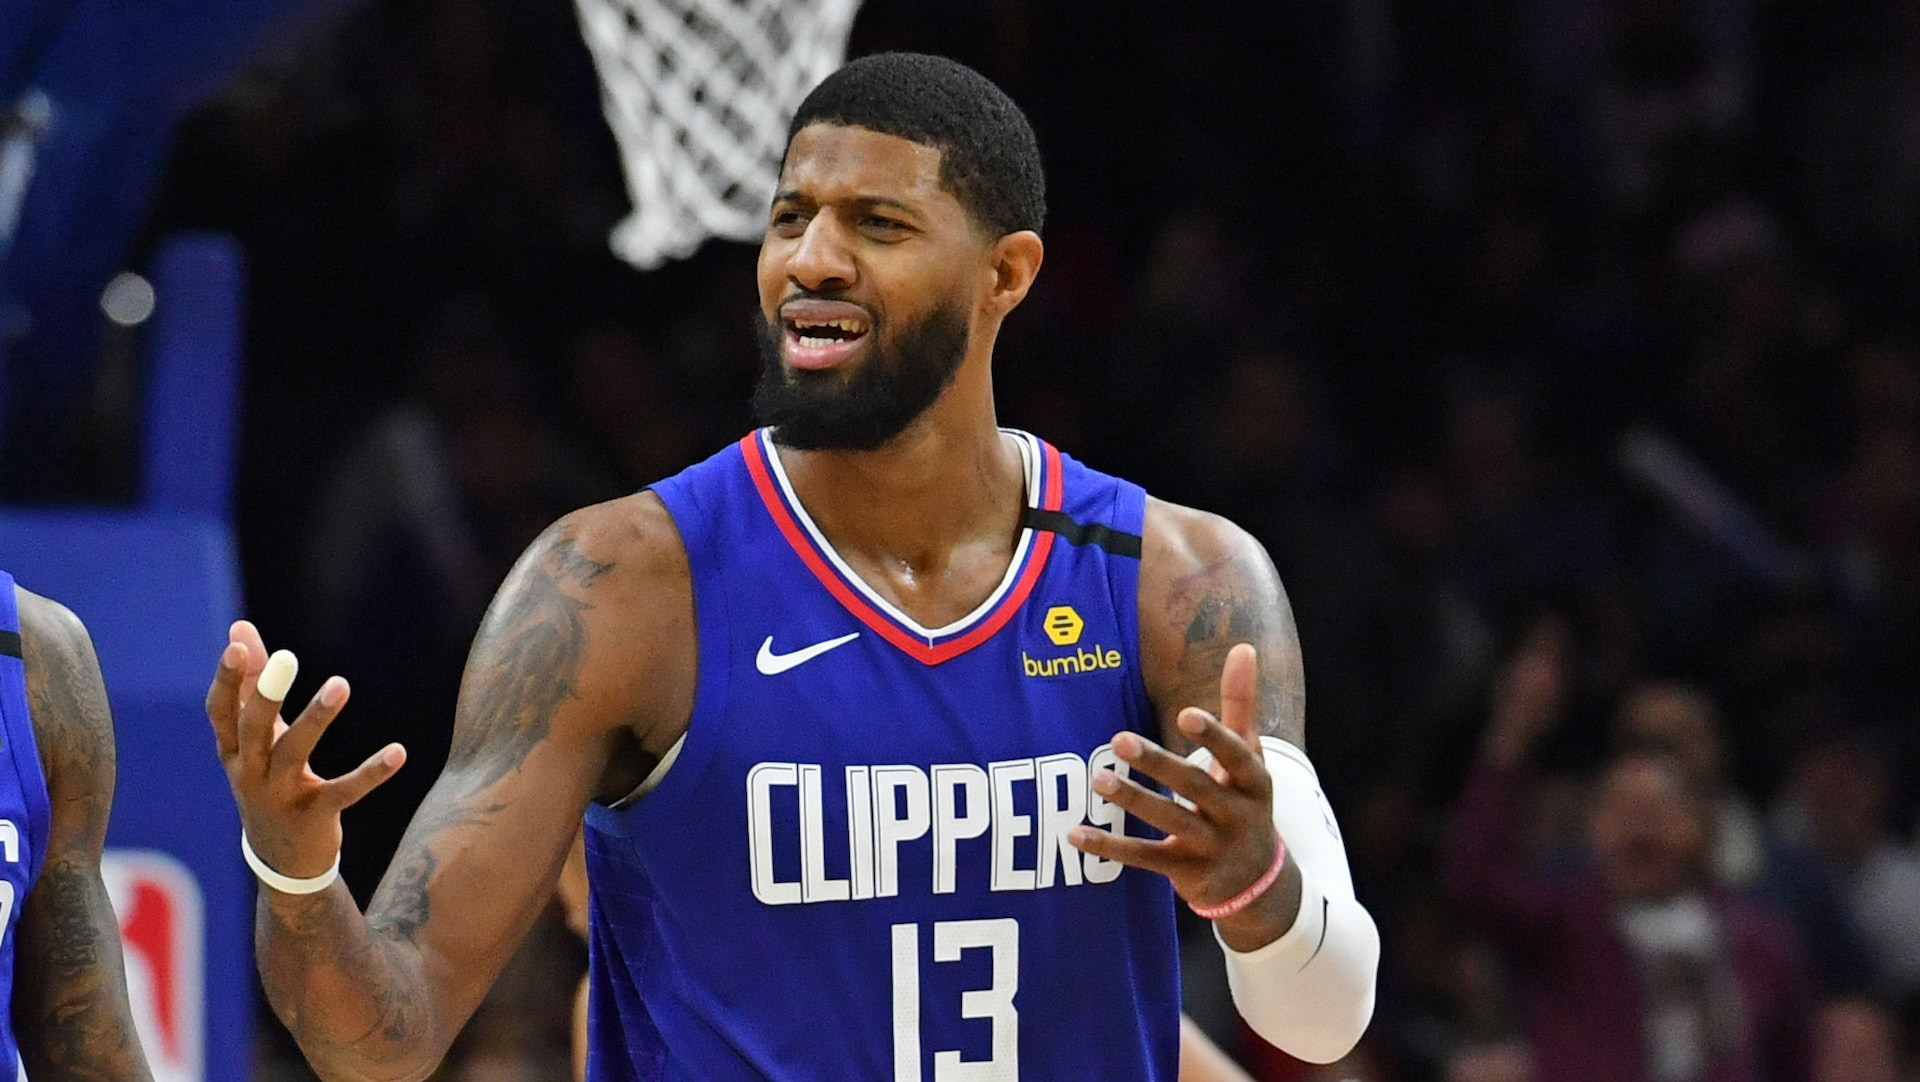 Clippers forward Paul George fined $35,000 for criticism of officiating